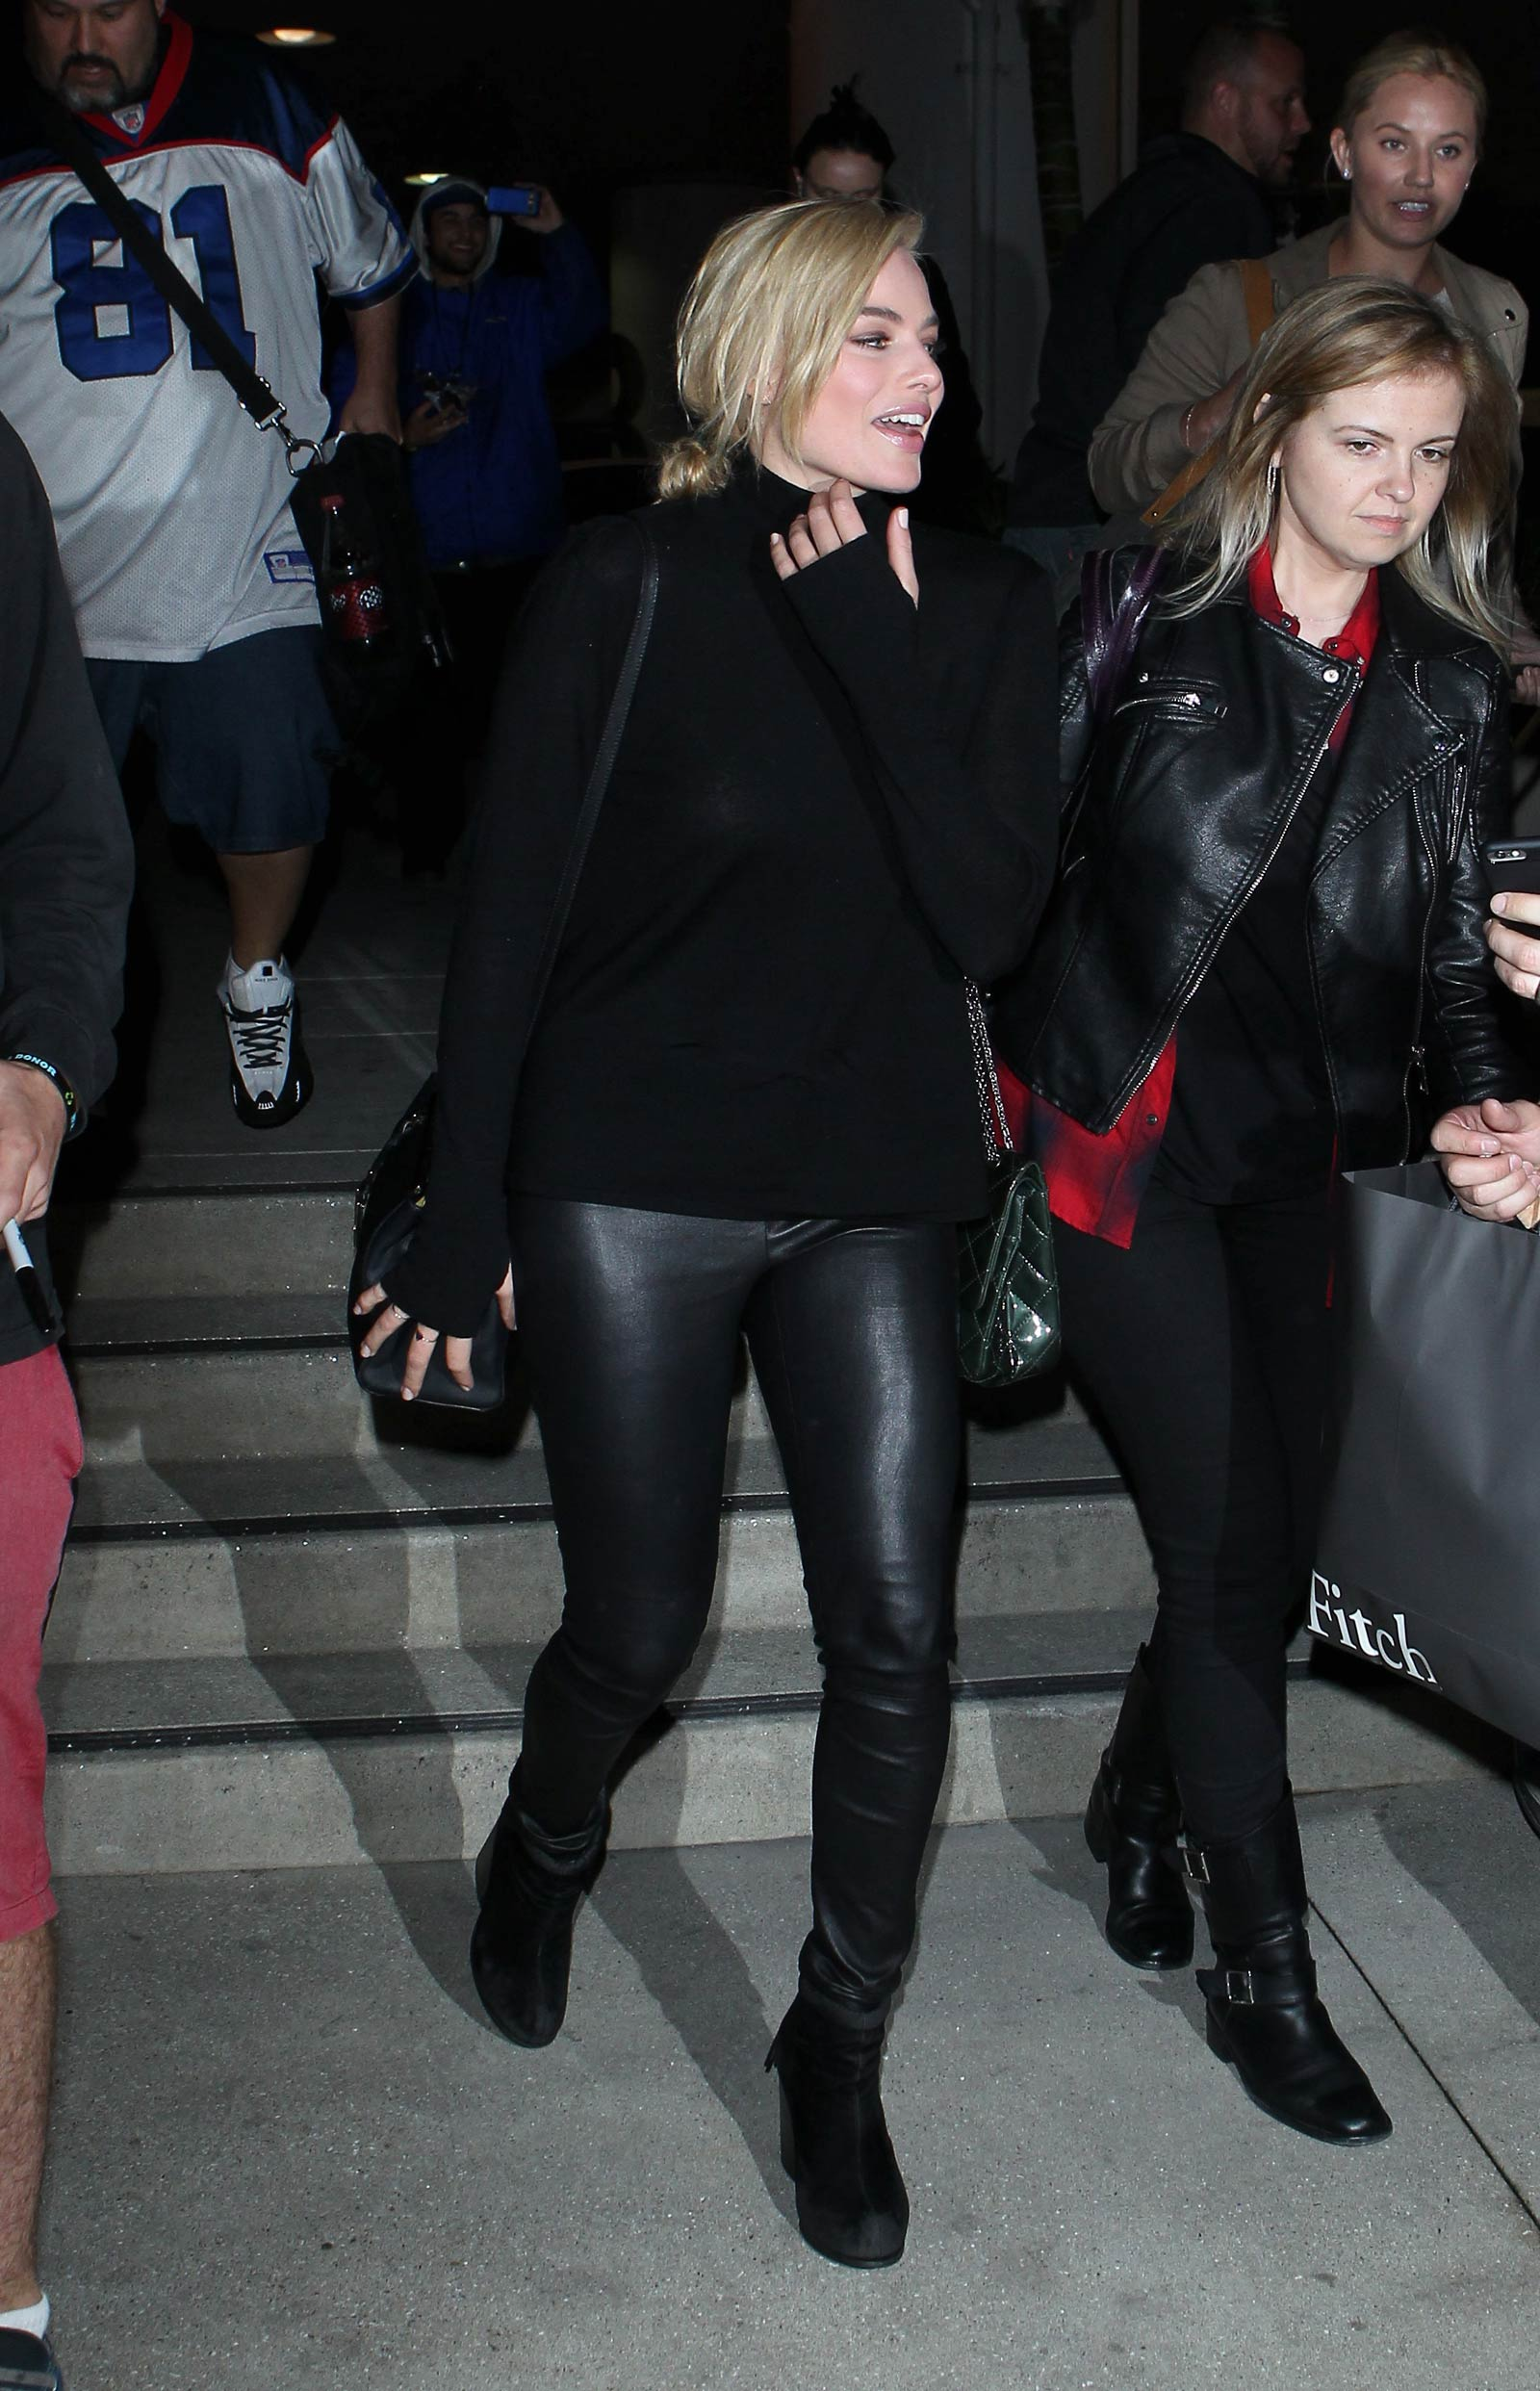 9ffe11ff4ae979 Margot Robbie LAX departure candids in Los Angeles - Leather Celebrities